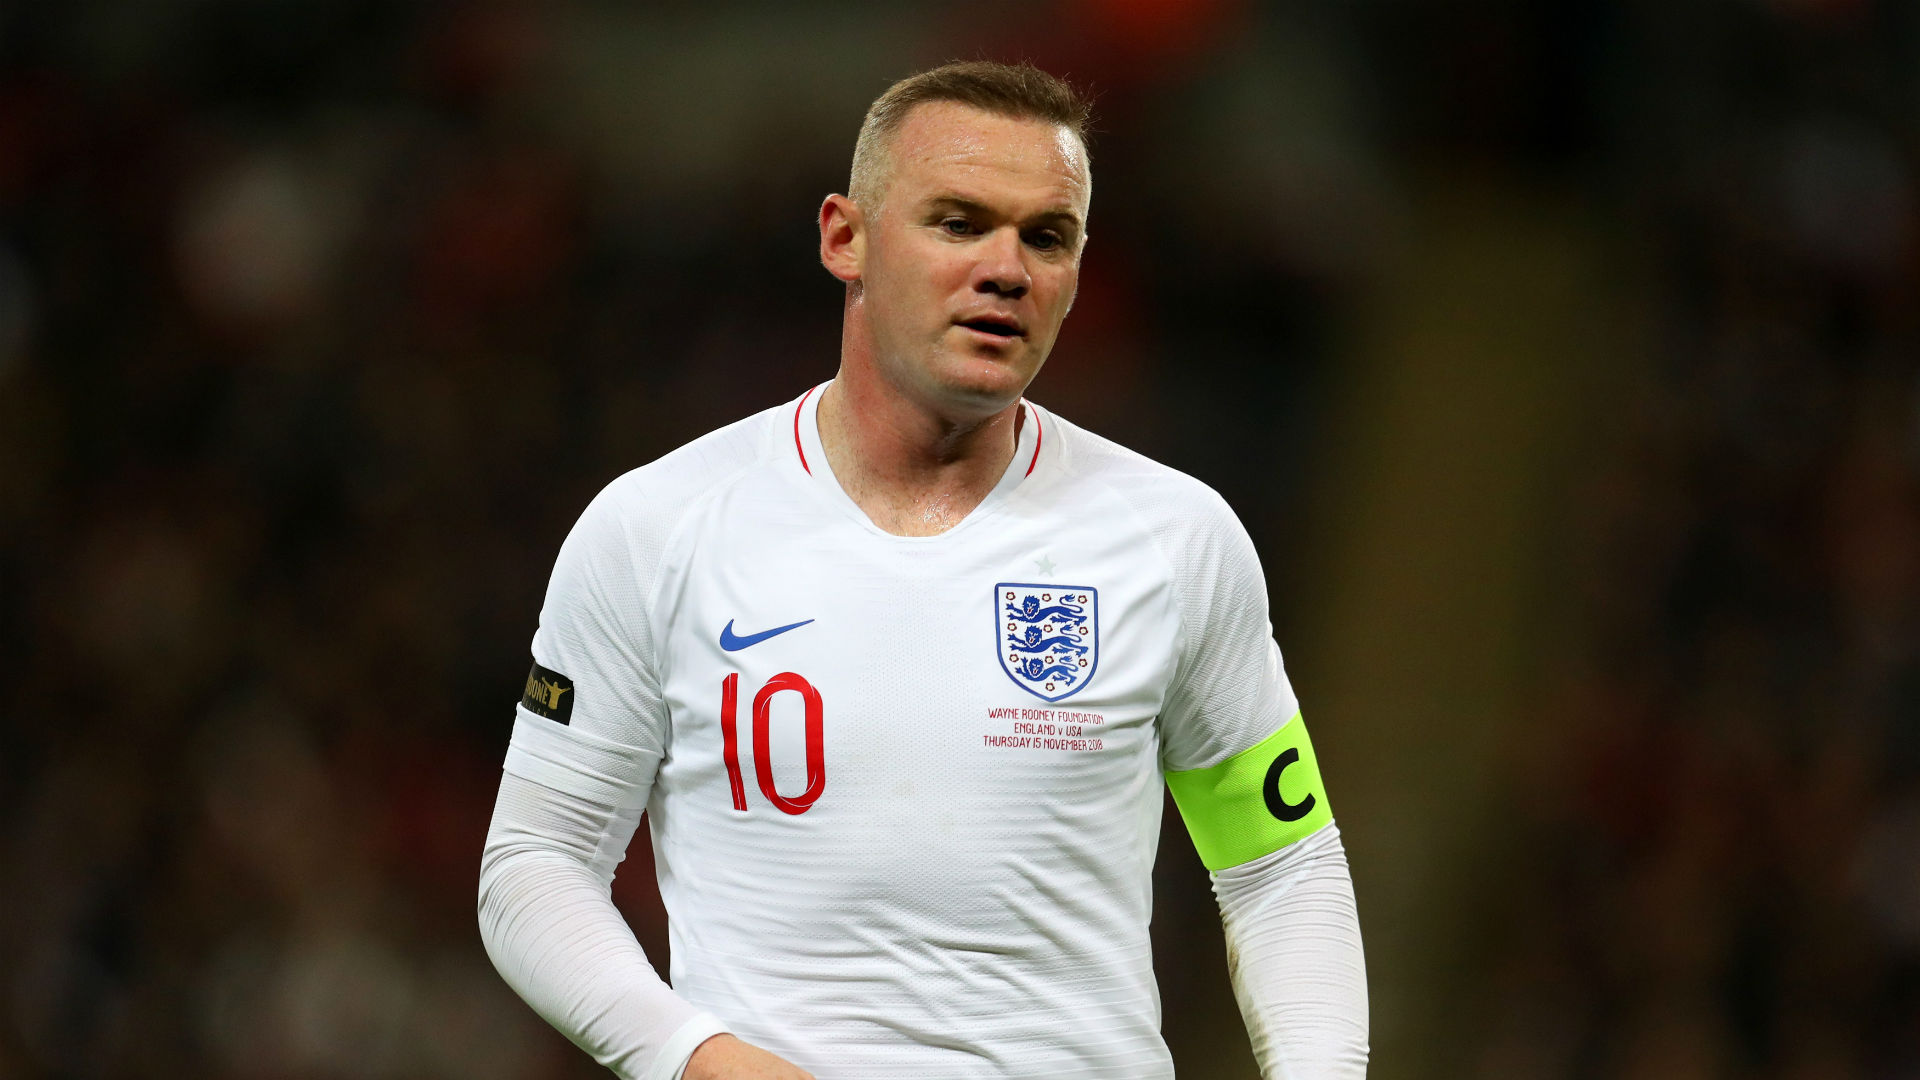 Wayne Rooney arrested in United States for public intoxication and swearing